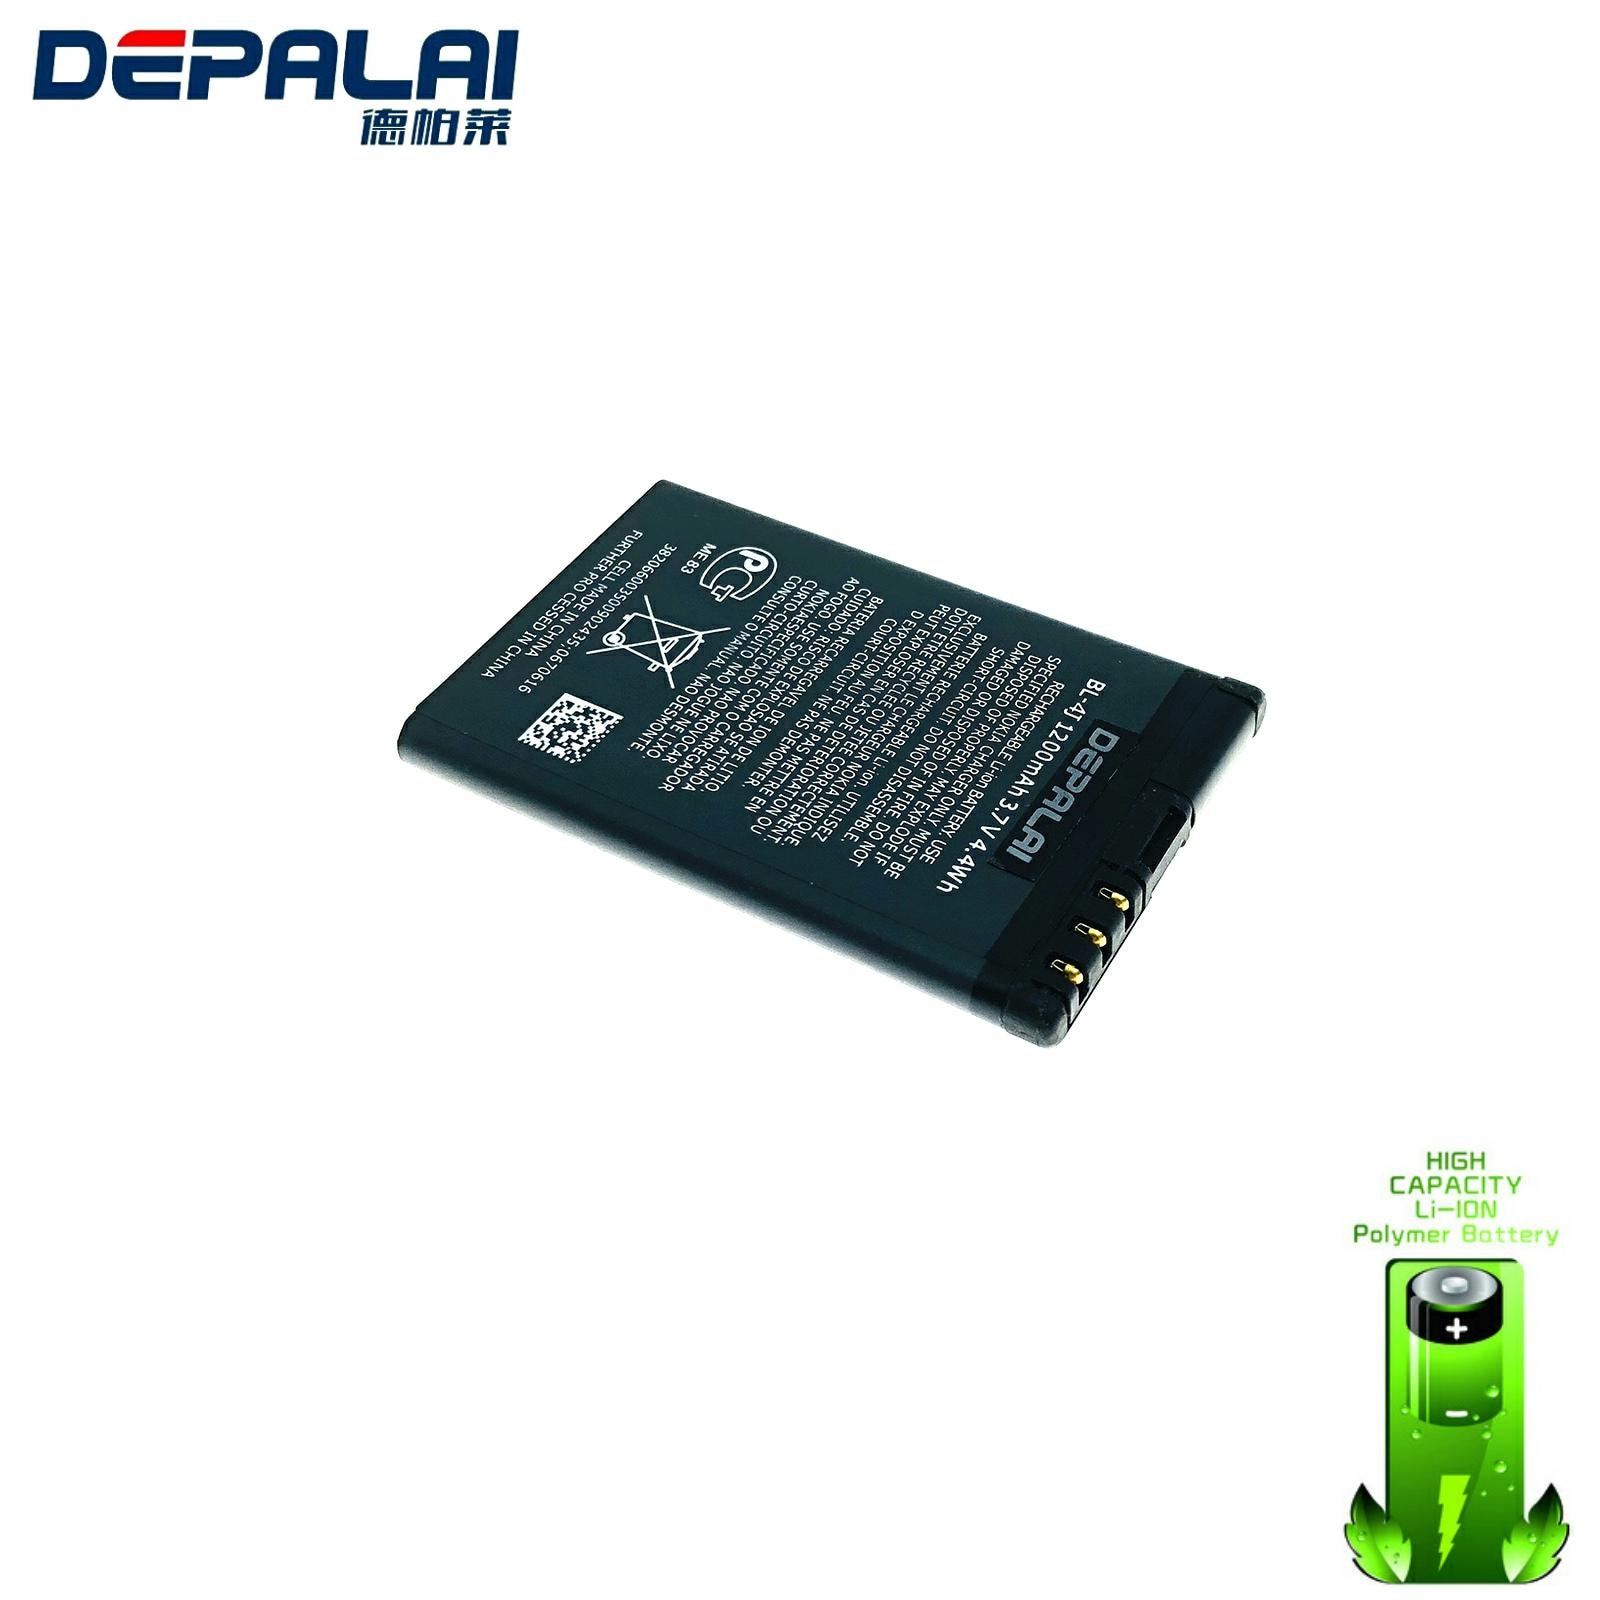 bl 4j BL-4J Battery Mobile Phone Battery Batteries for Nokia C6 C6-00 Lumia 620 battery 1300mAh Mobi